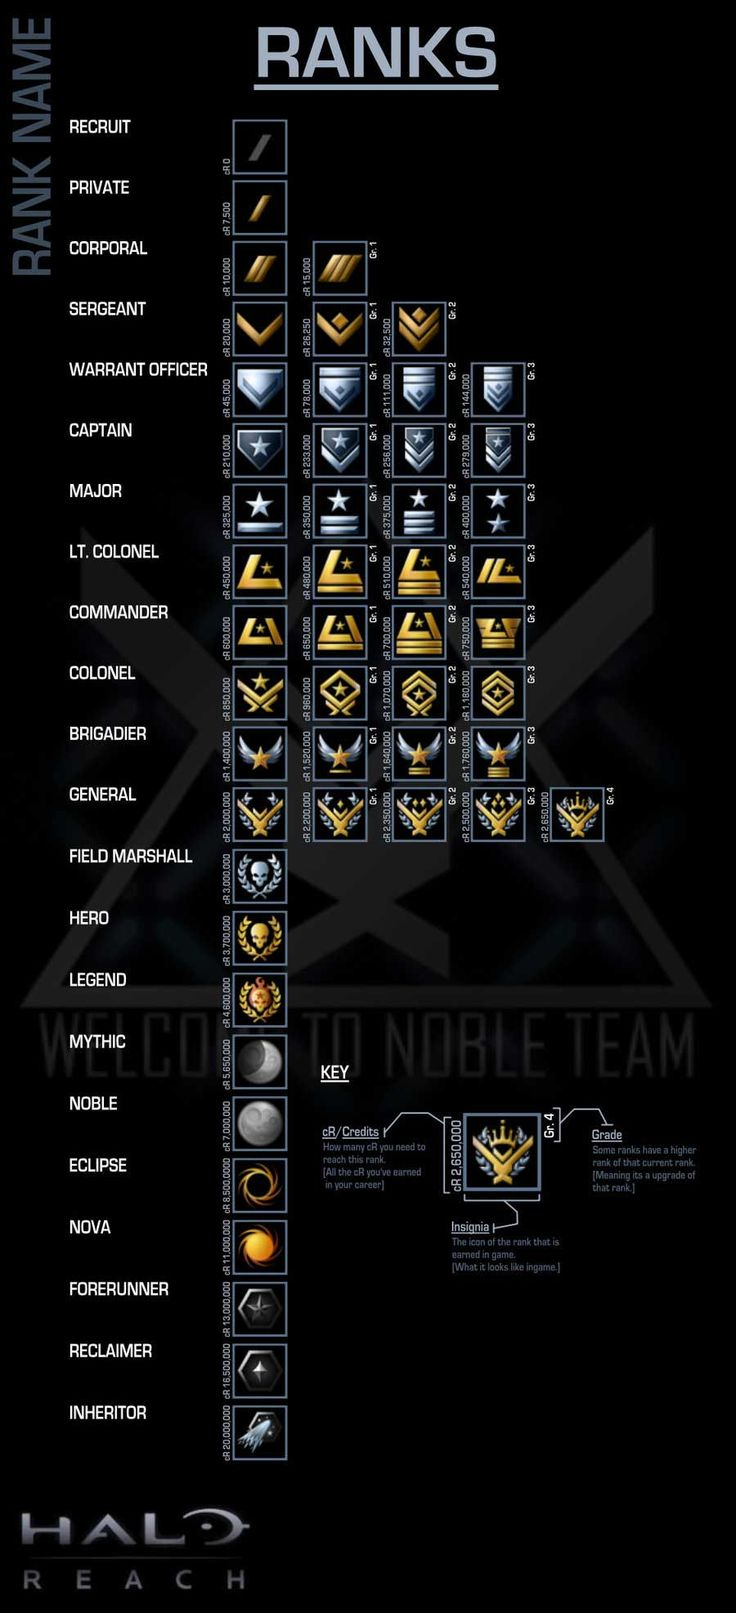 halo reach ranks - Google Search